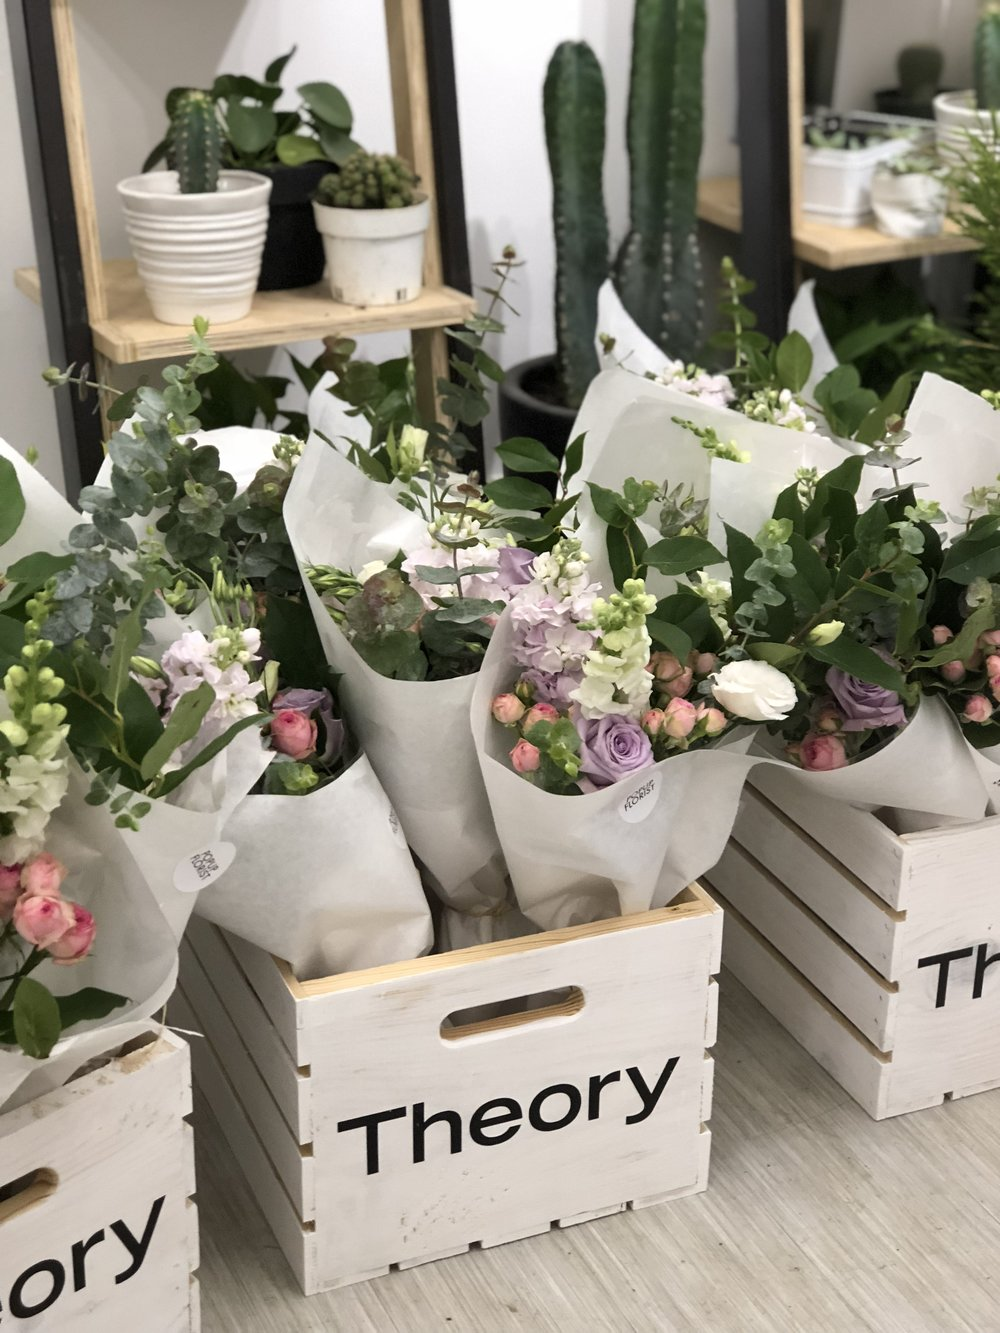 Theory Florals